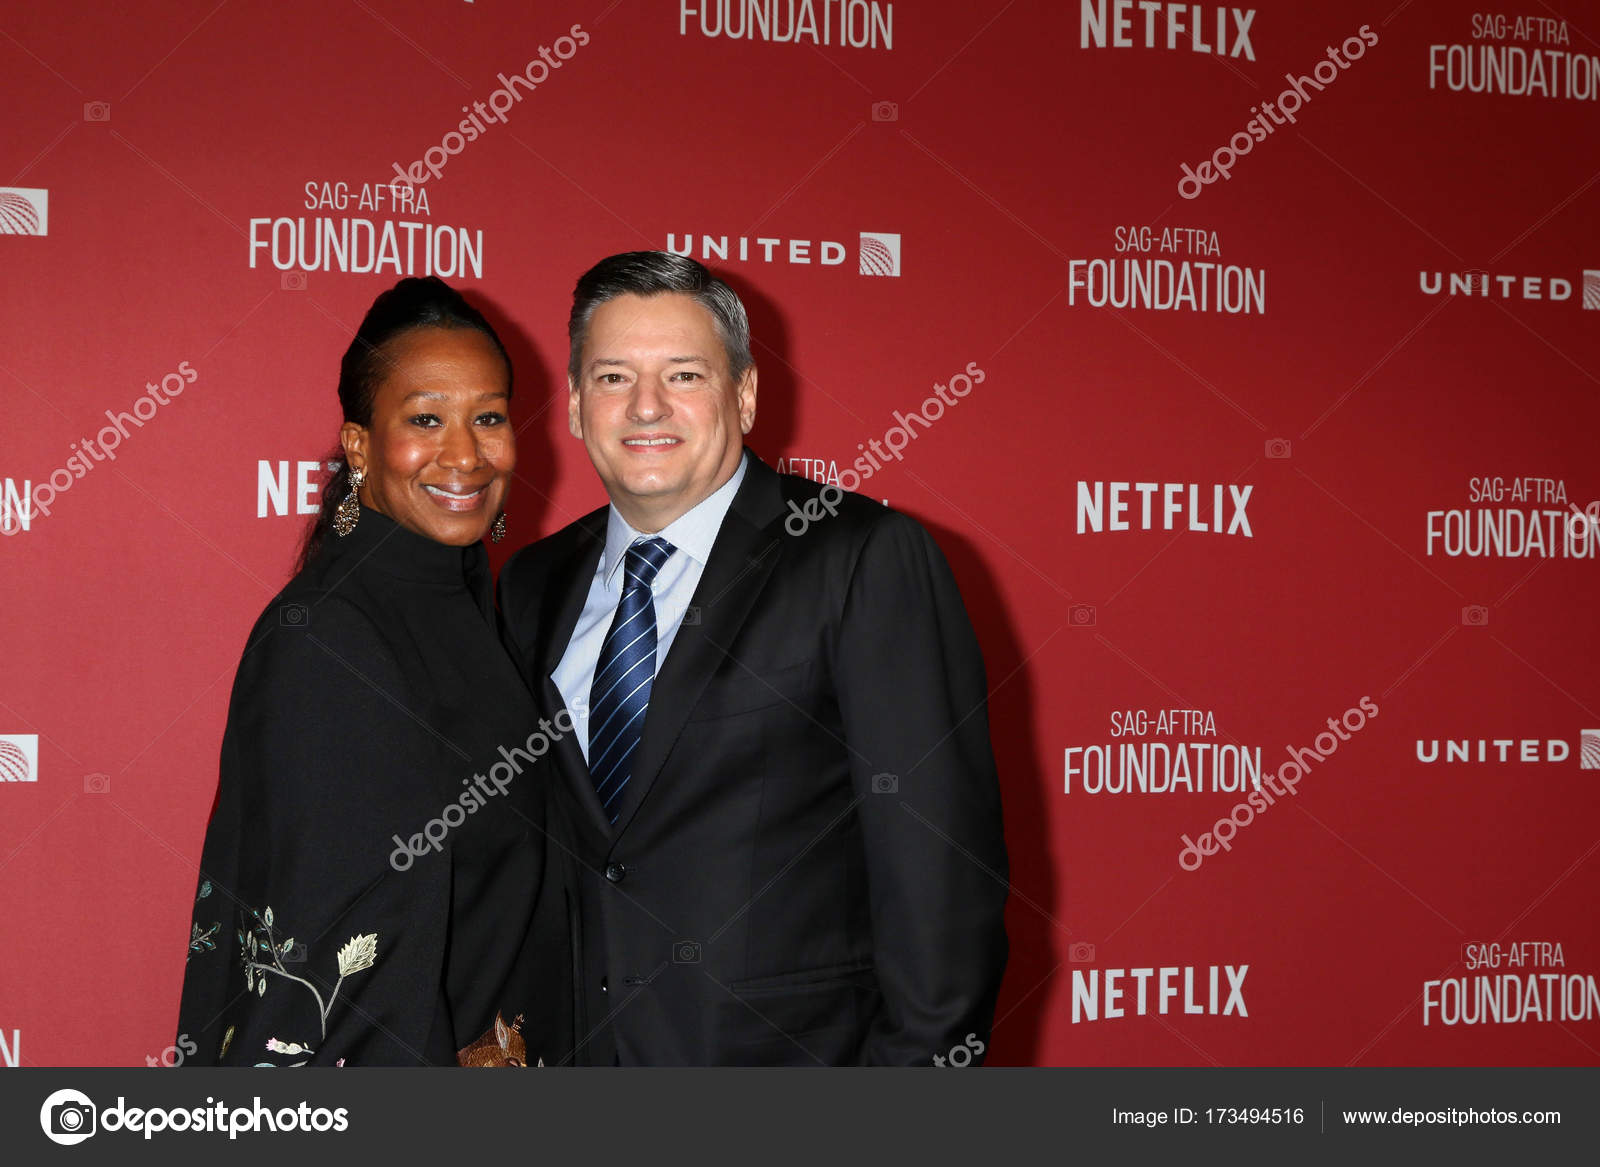 Ambassador Nicole Avant with businessman Ted Sarandos